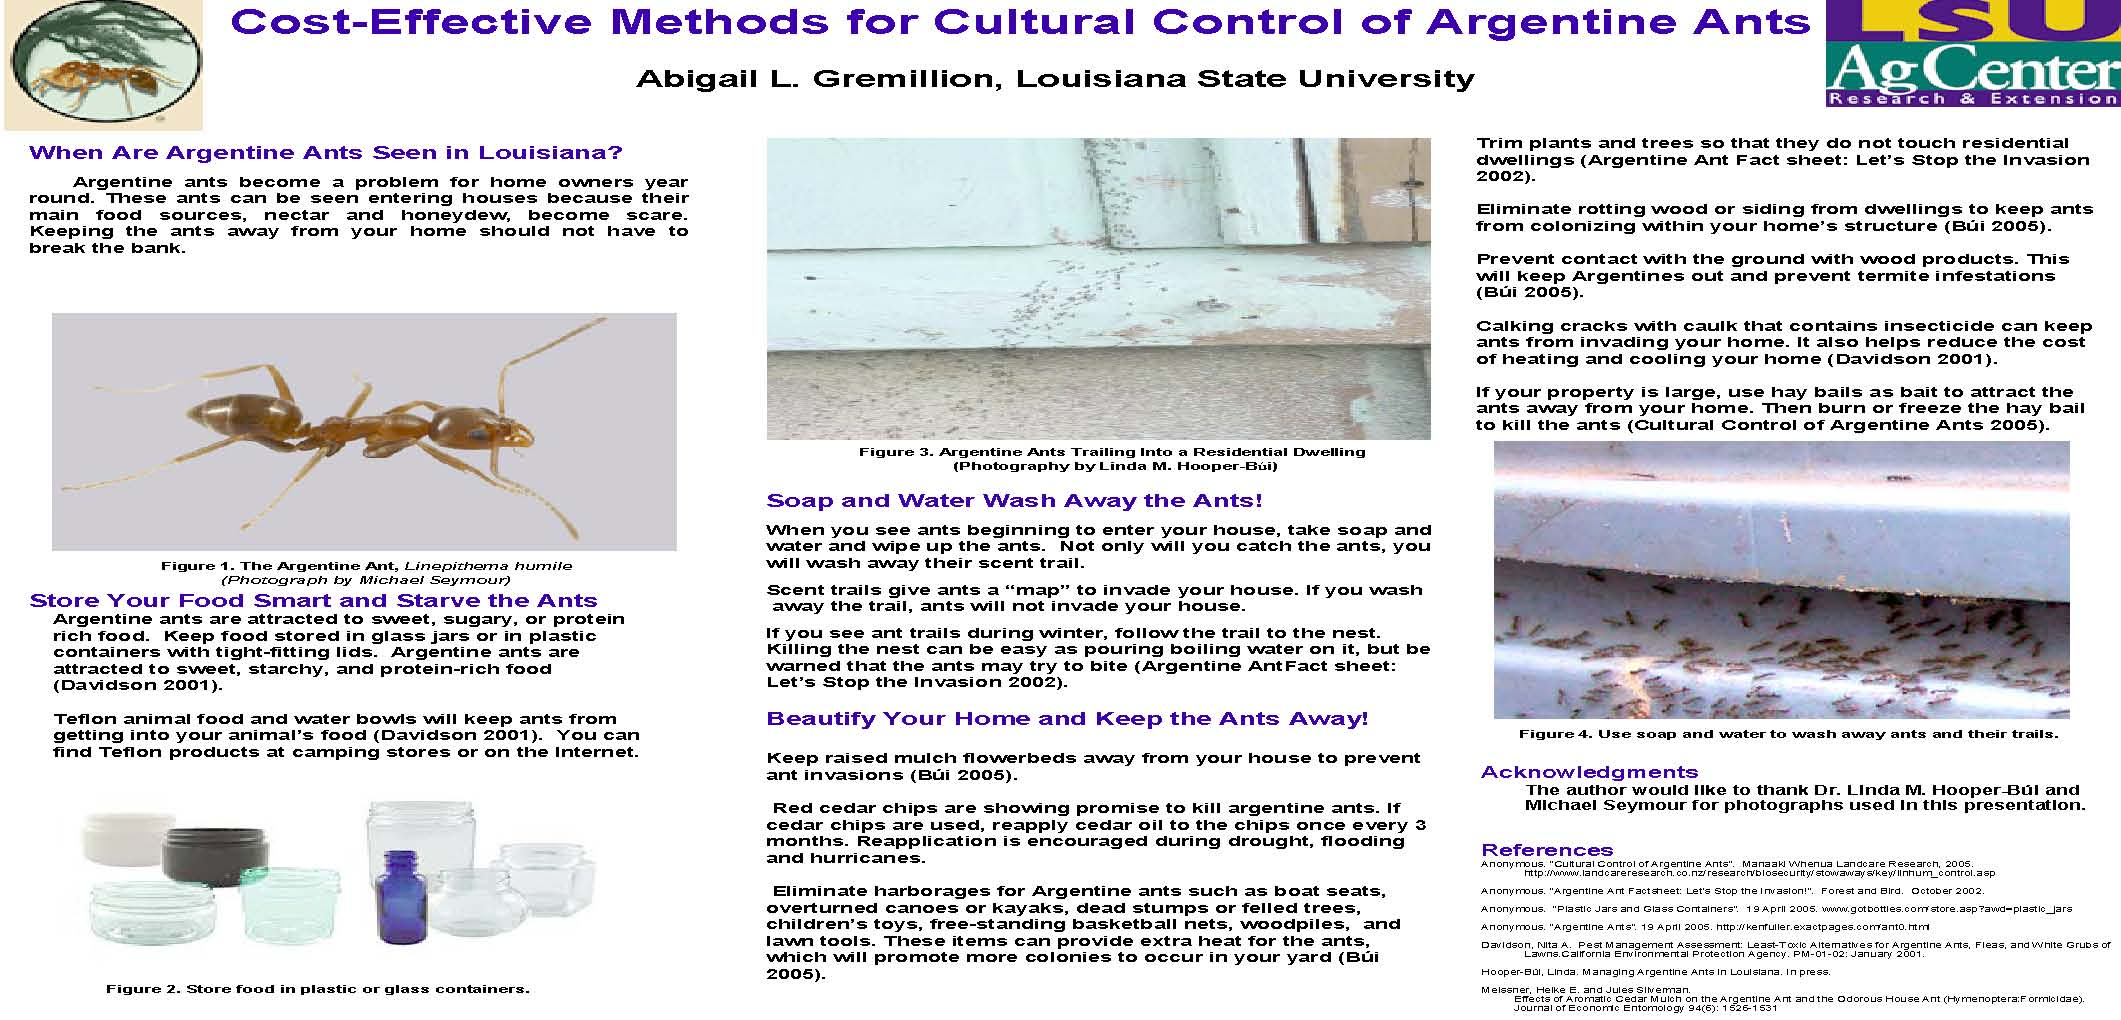 Cost-Effective Methods for Cultural Control of Argentine Ants